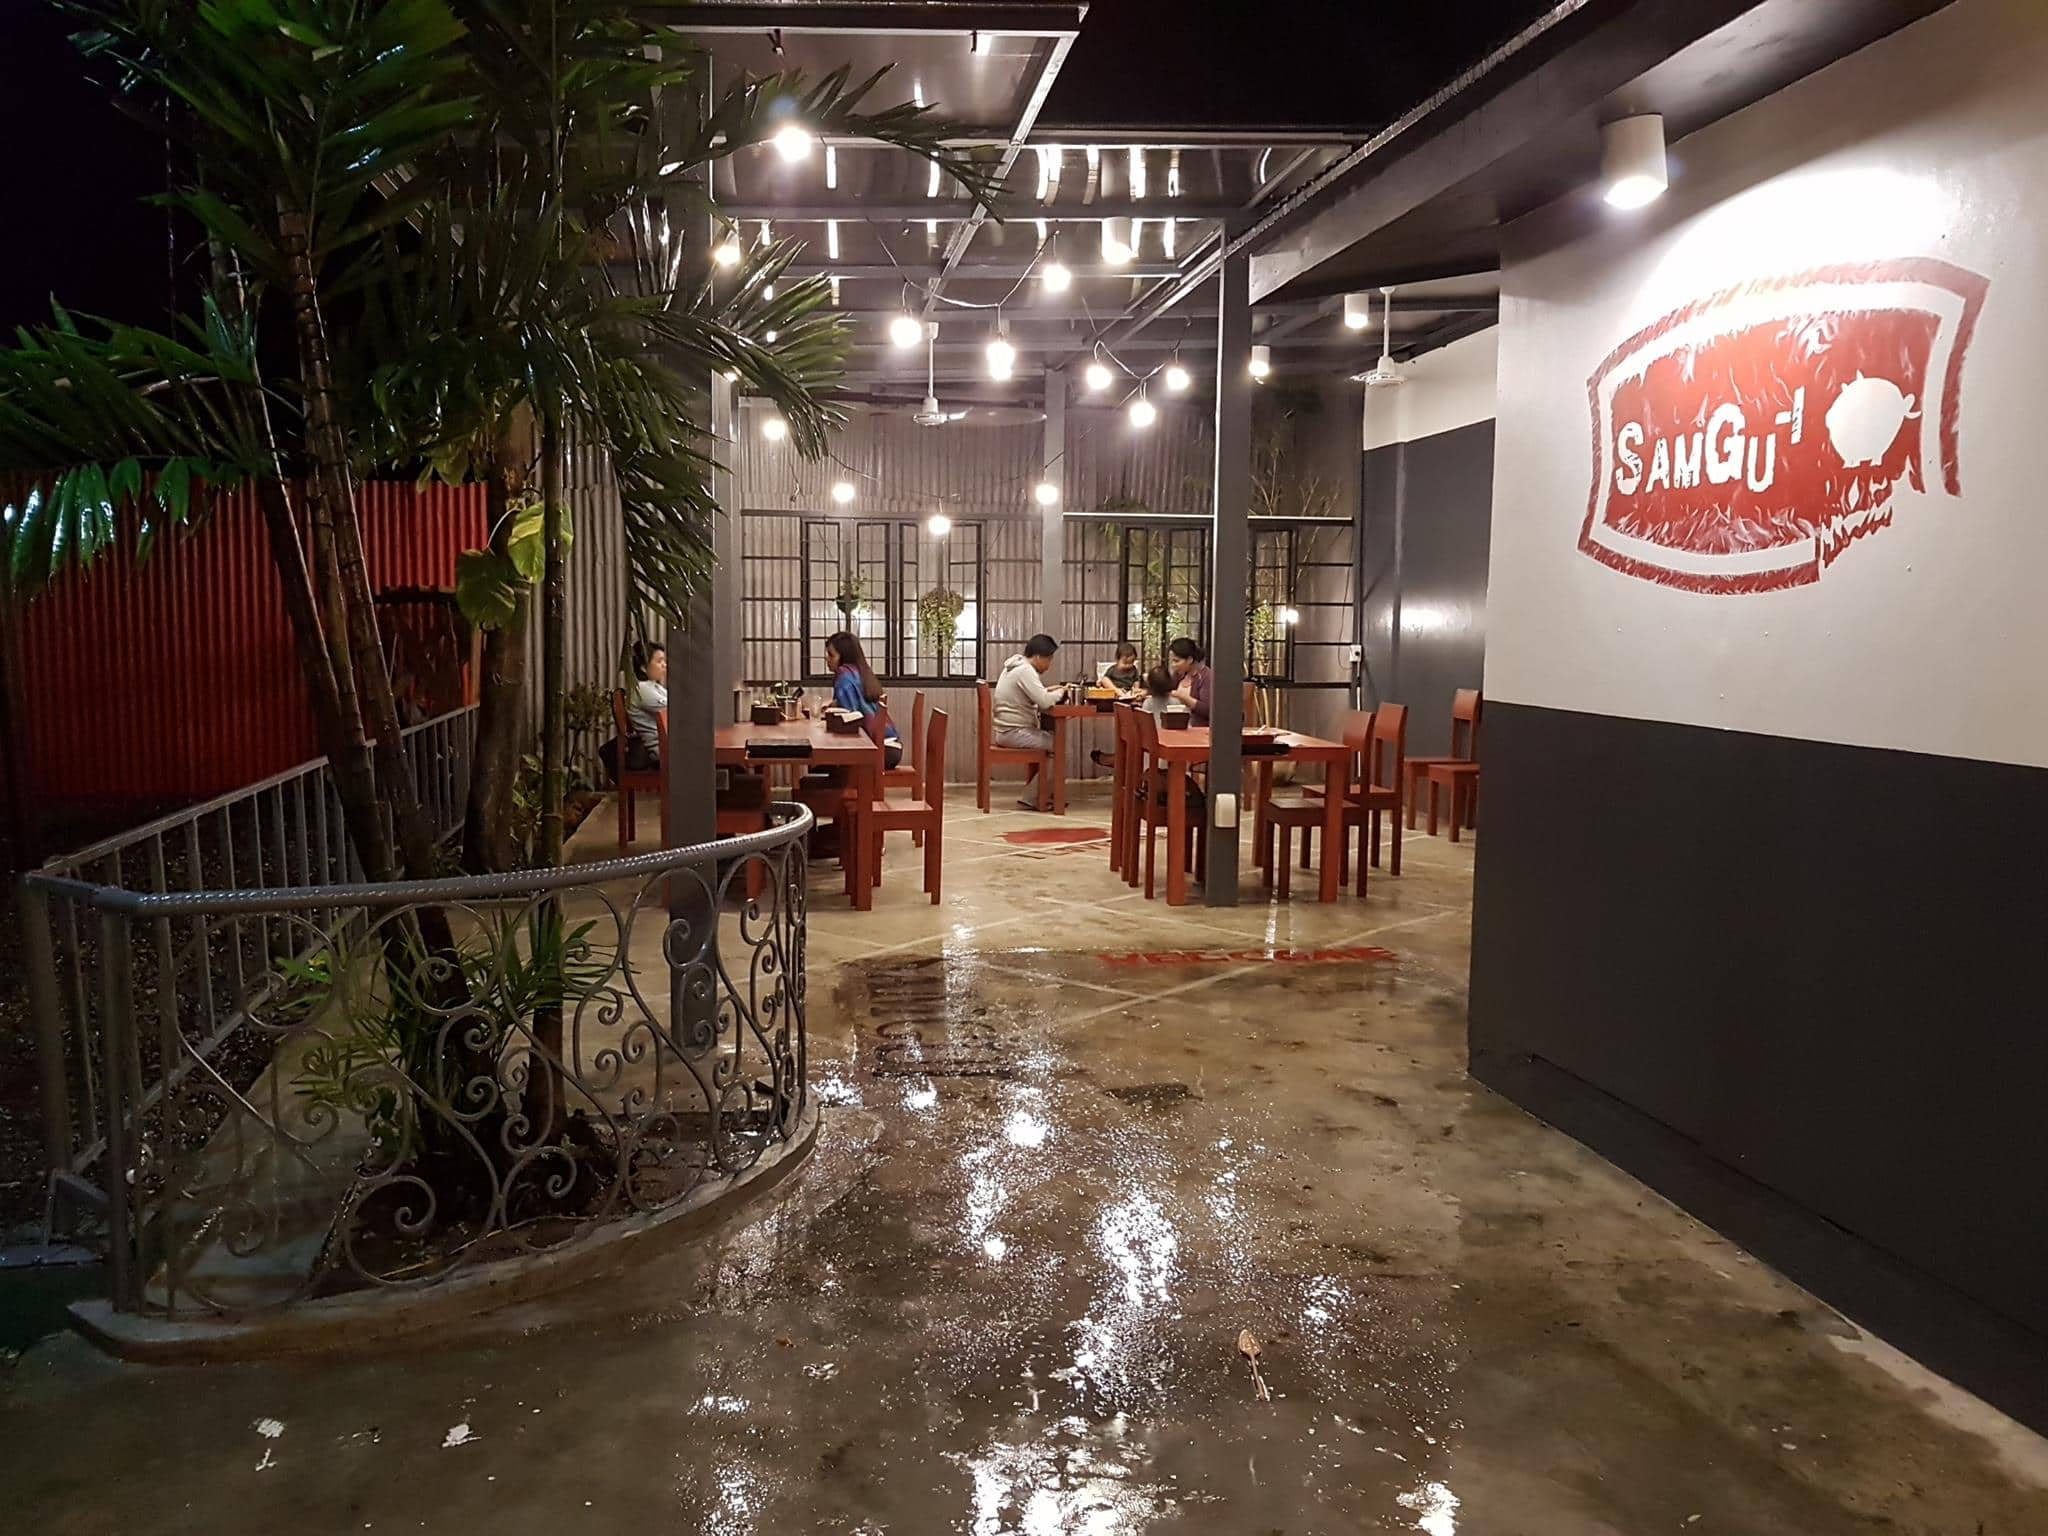 where to eat in cagayan de oro, restaurants in cagayan de oro, estaurants in cdo, cagayan de oro philippines, cagayan de oro food specialties, kagay-anon restaurant cagayan de oro, misamis oriental, eat all you can cagayan de oro, affordable restaurants in cdo